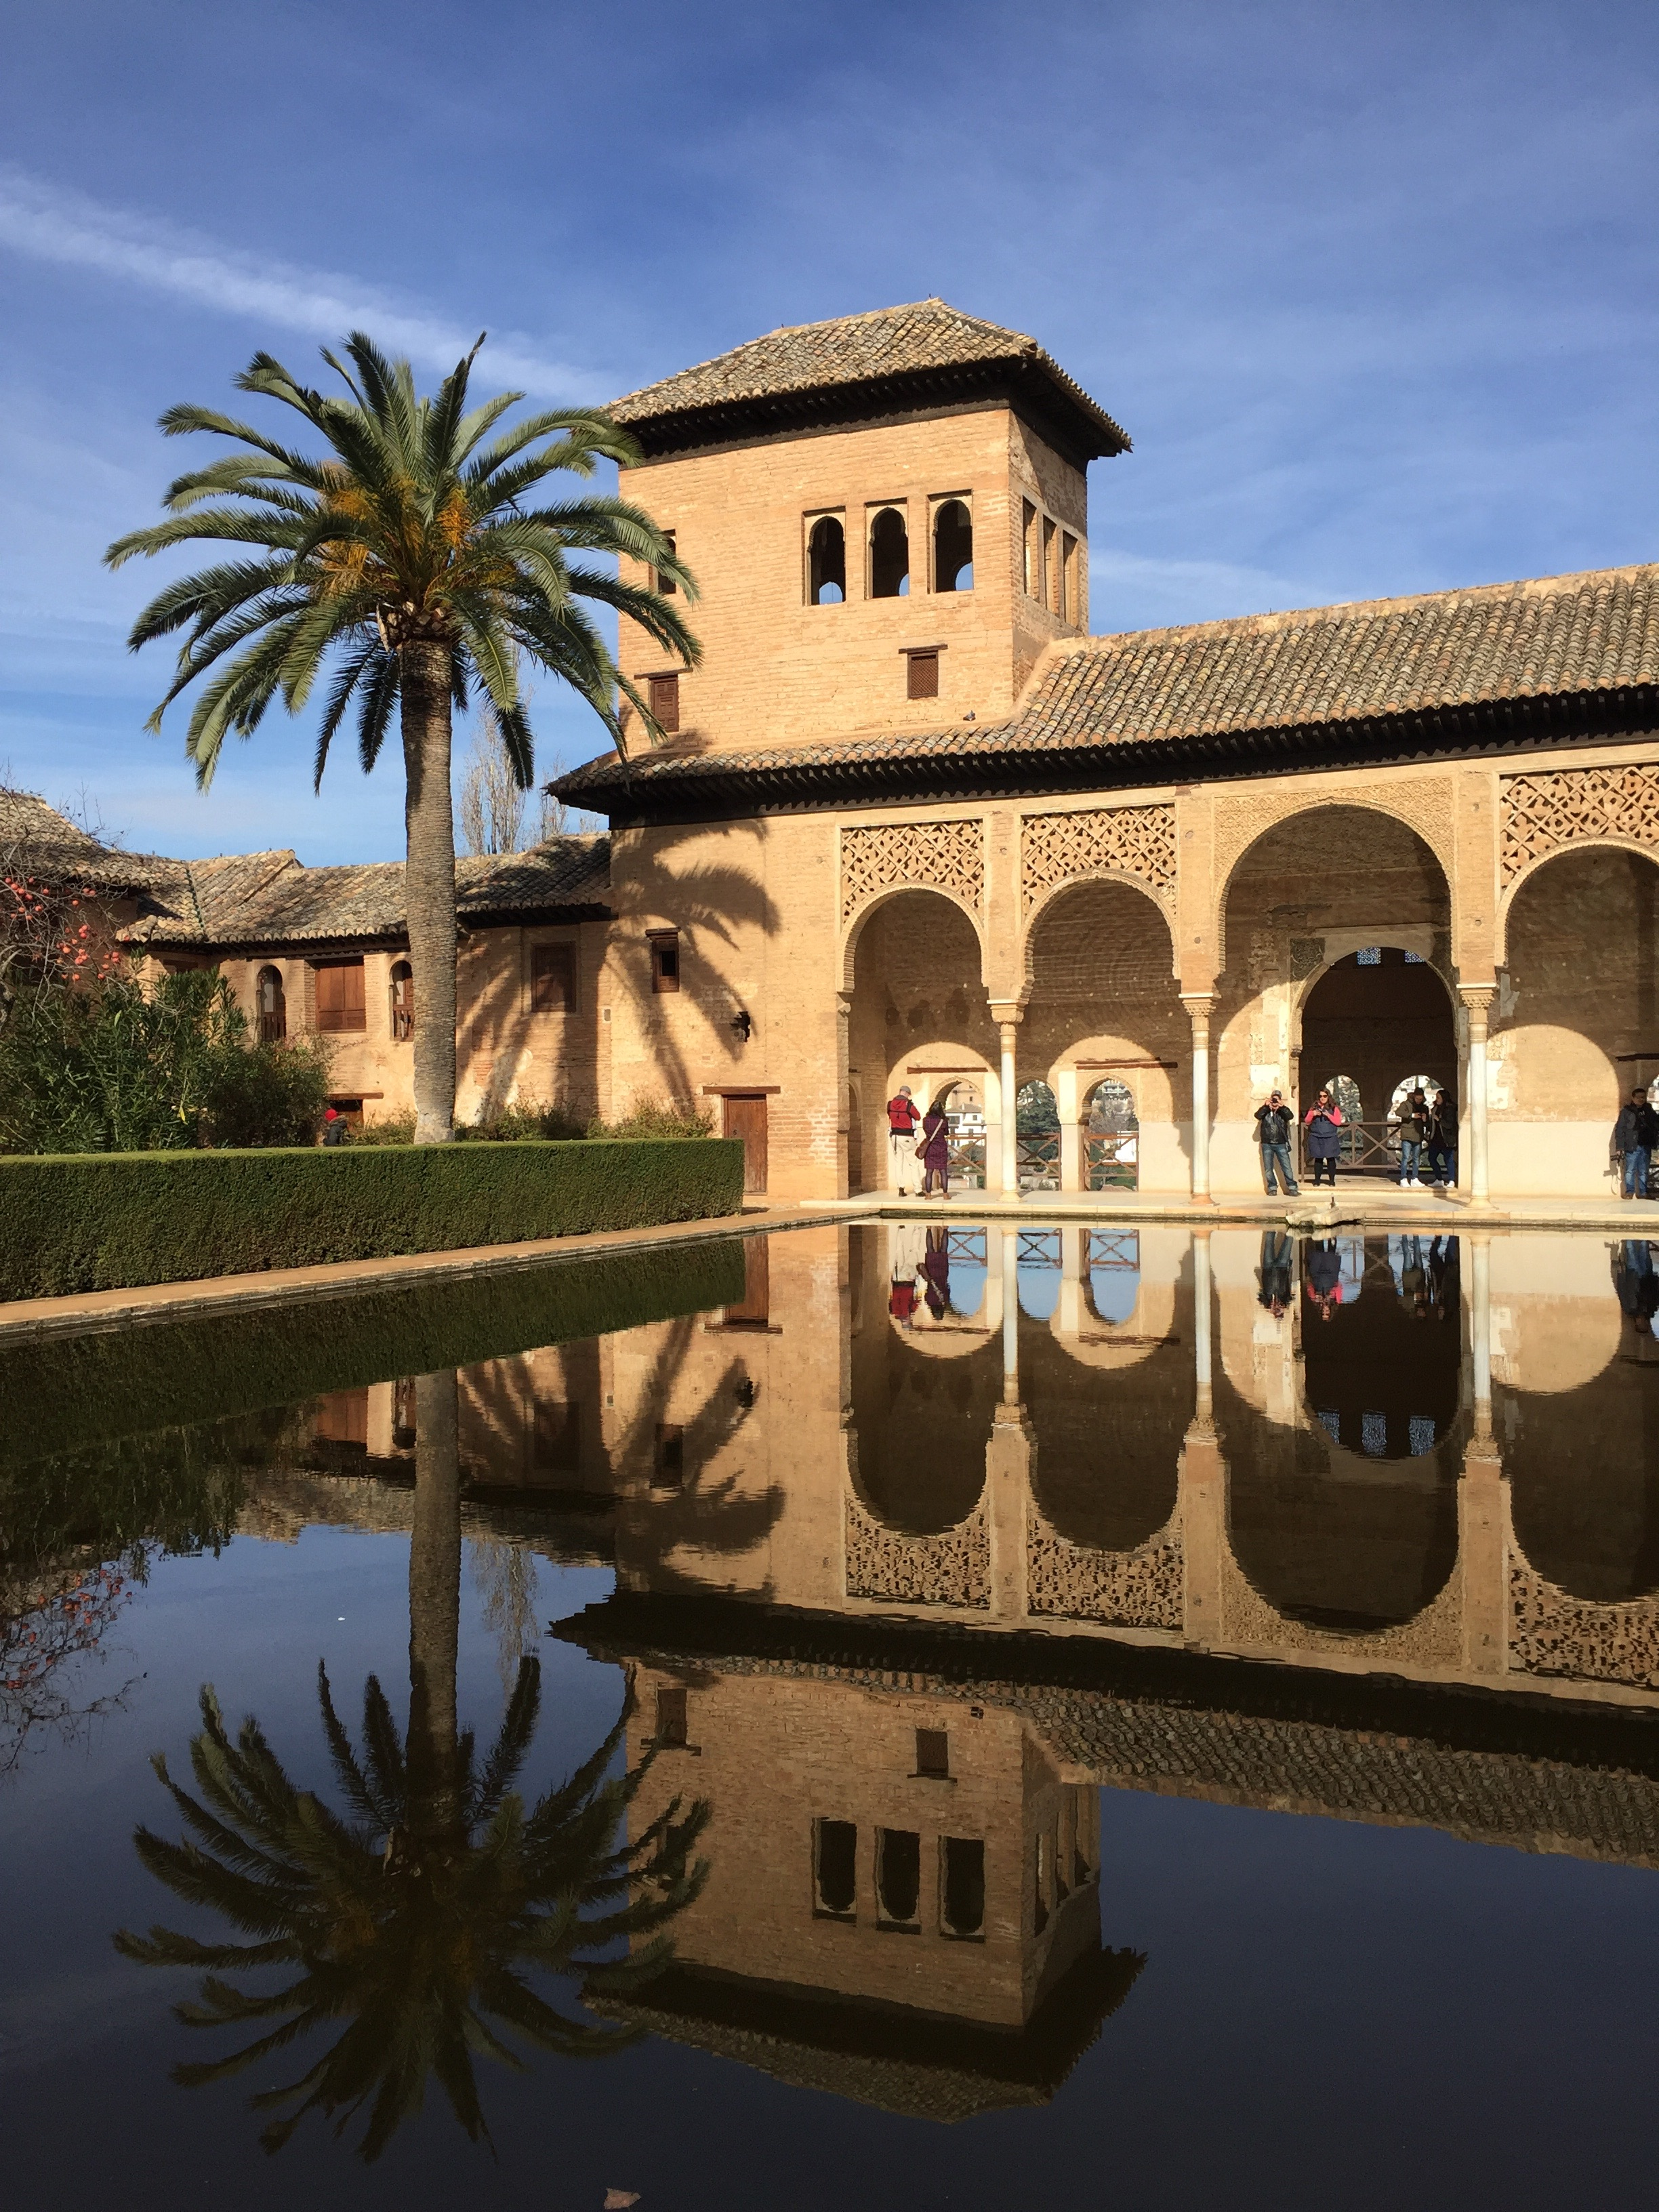 alhambra christian personals The alhambra resembles many medieval christian strongholds in its threefold arrangement as a castle,  a triumphal arch dating from the 15th century.